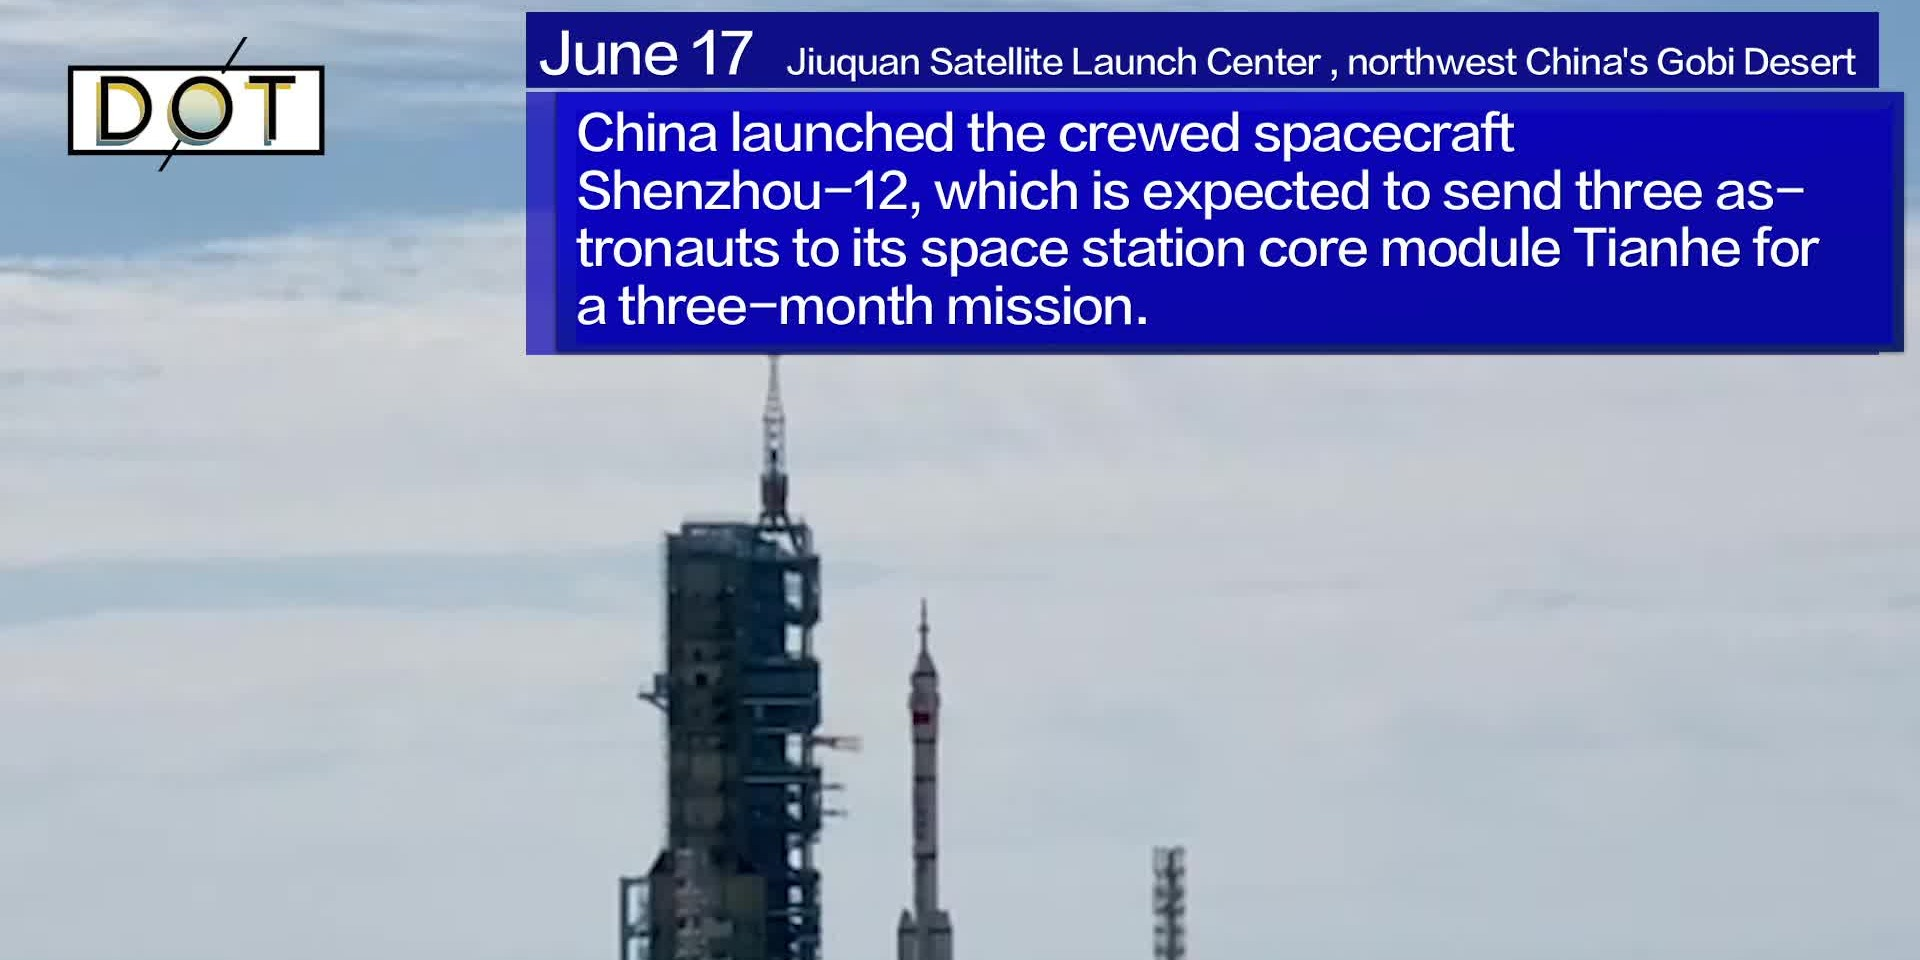 Watch This | China launches first crewed mission for space station construction